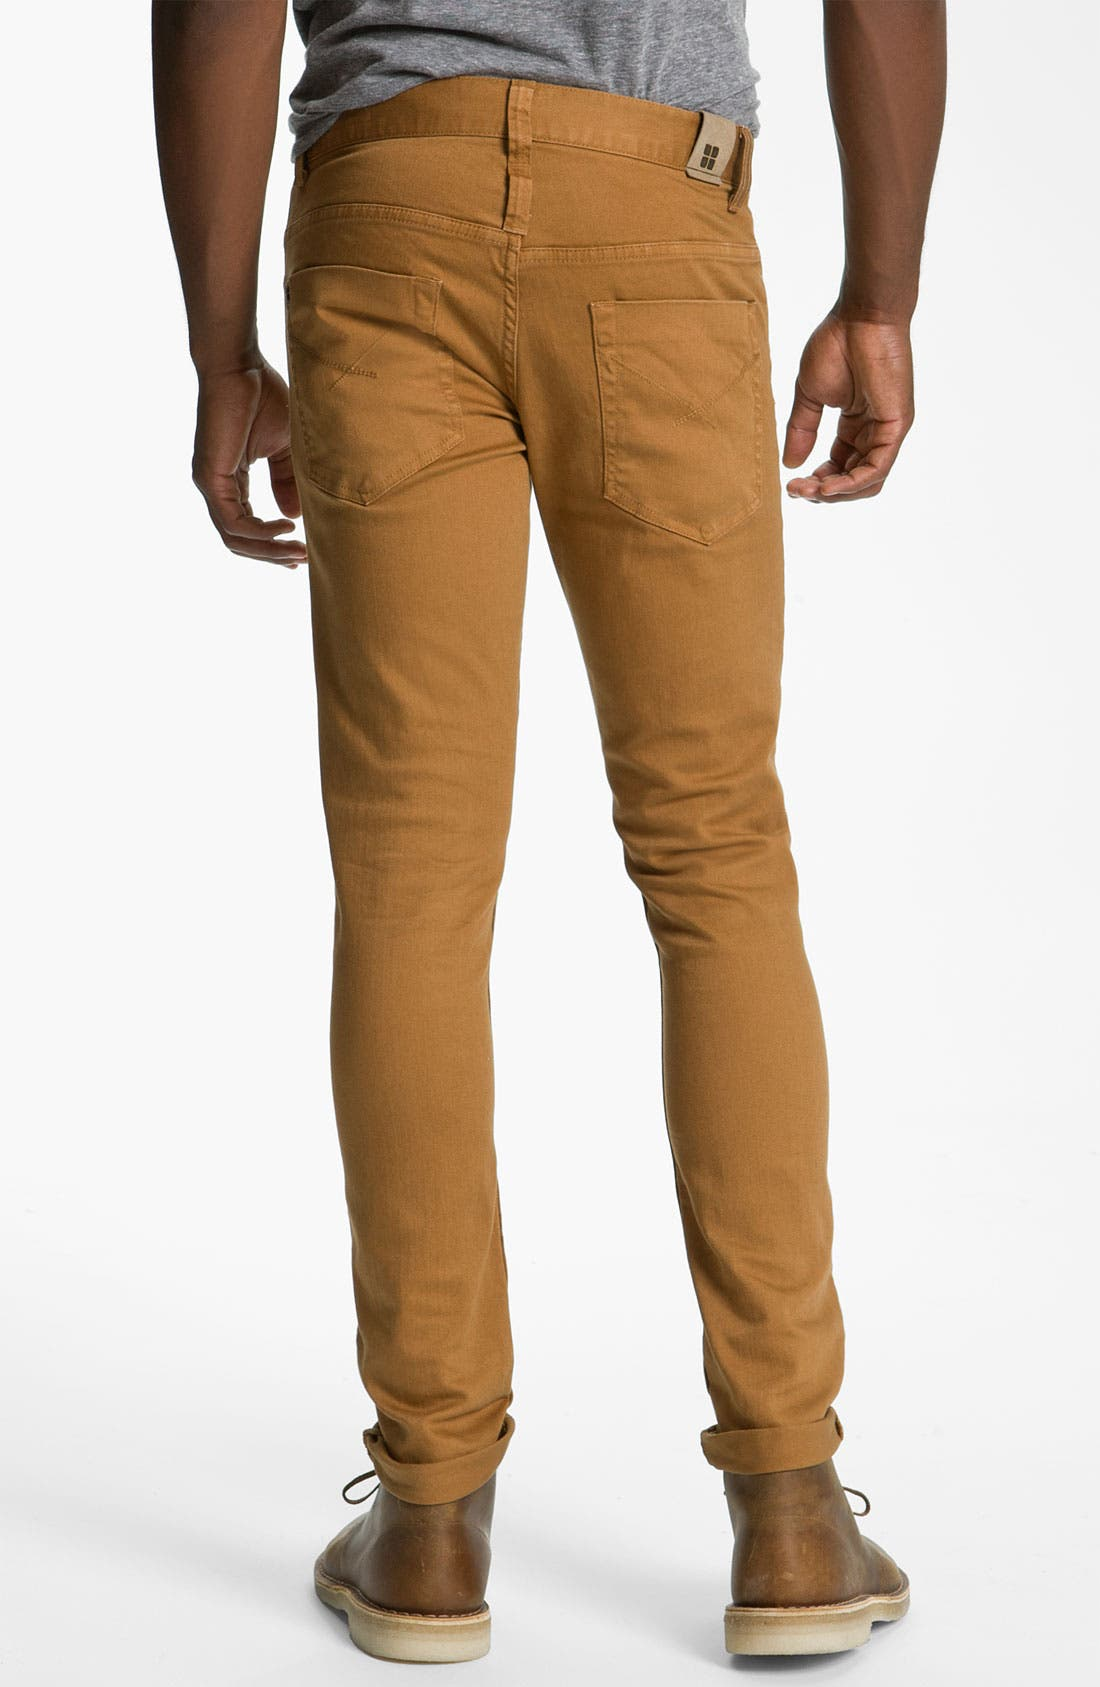 Alternate Image 1 Selected - Insight 'City Riot' Slim Straight Leg Jeans (Digger)